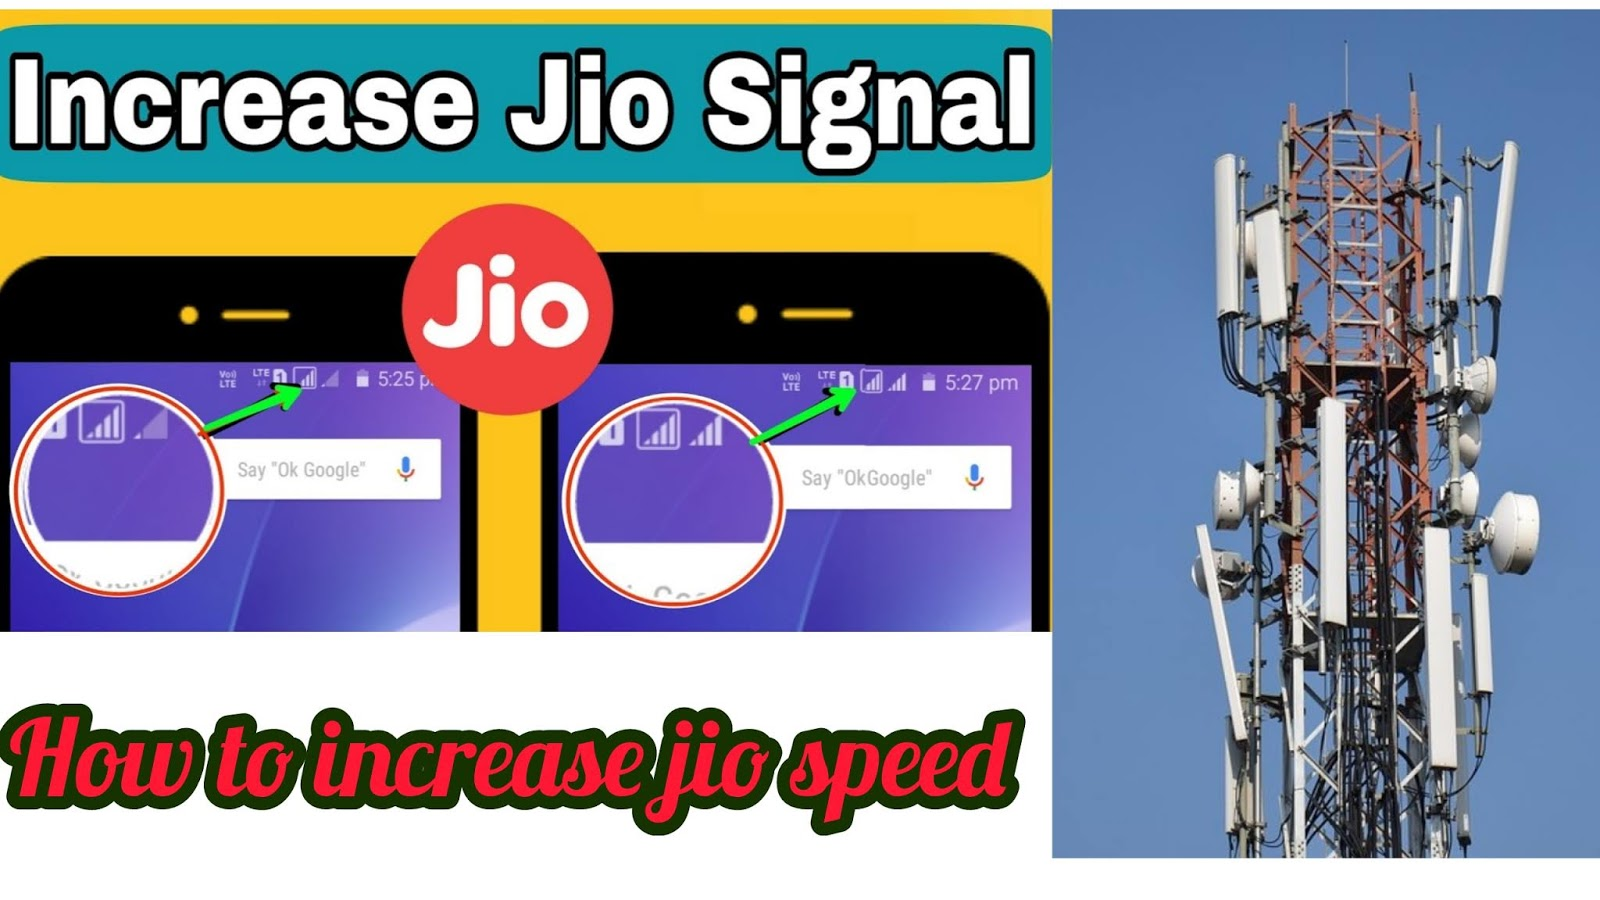 How to increase jio speed, how to increase jio network,how to increase jio data, jio sim, jio offer, jio recharge.